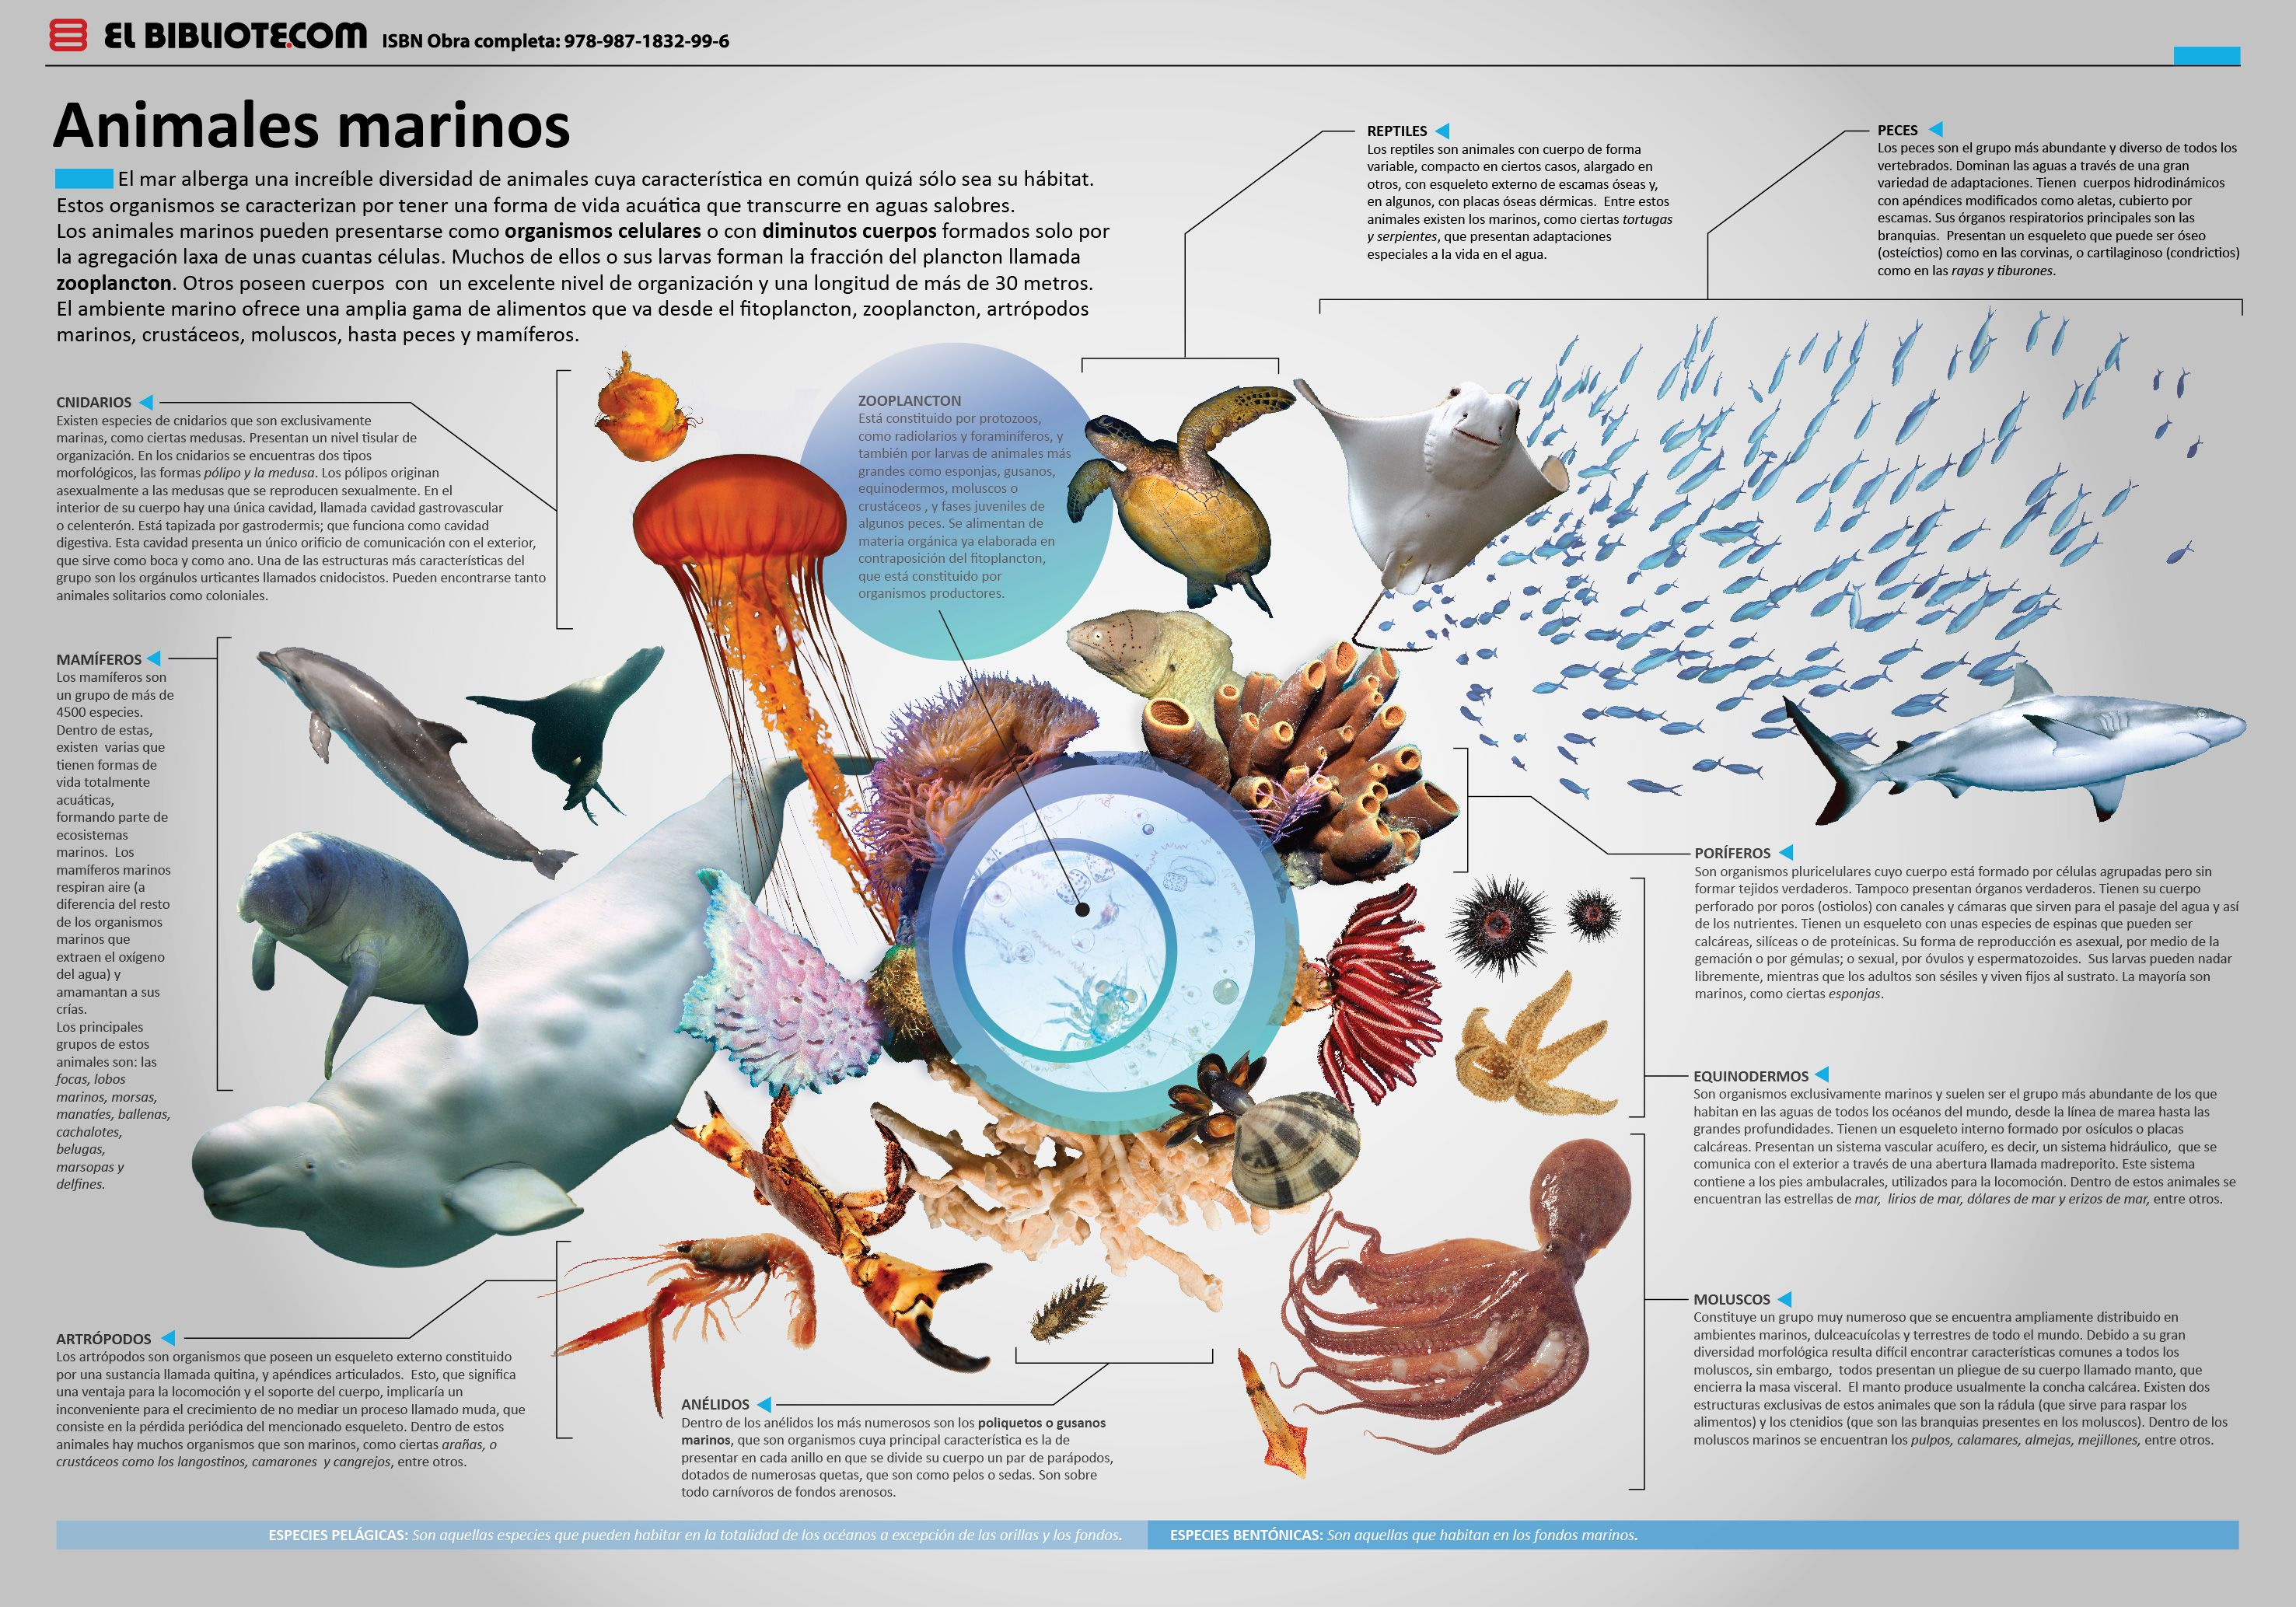 Pin By виктор пономаренко On Ciencia Naturaleza Y Tecnología Animal Posters Placemat Design Animals